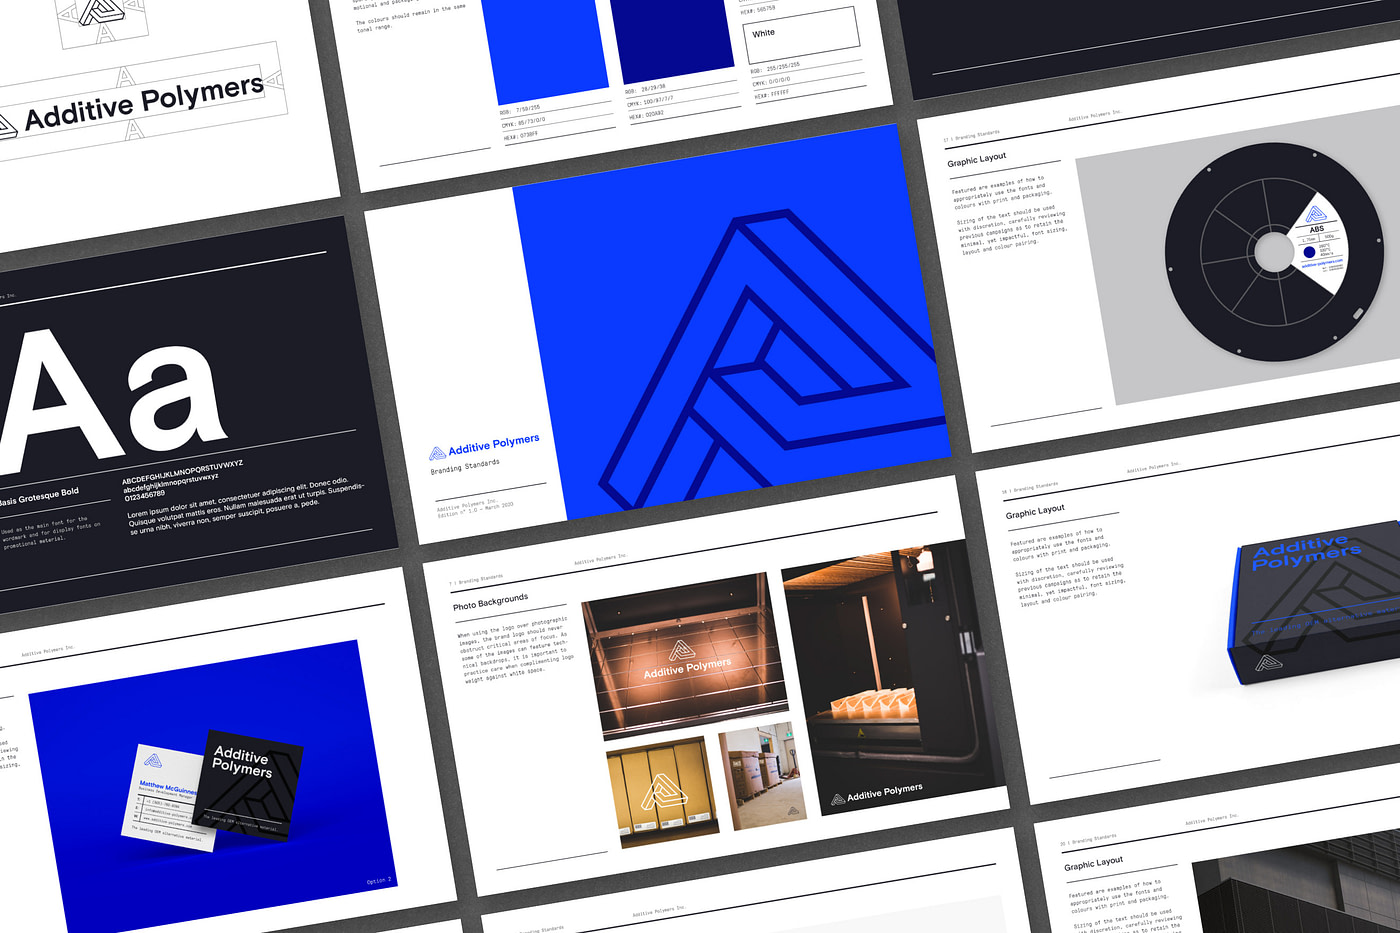 Blue, grey and black images of the Additive Polymers product catalogue